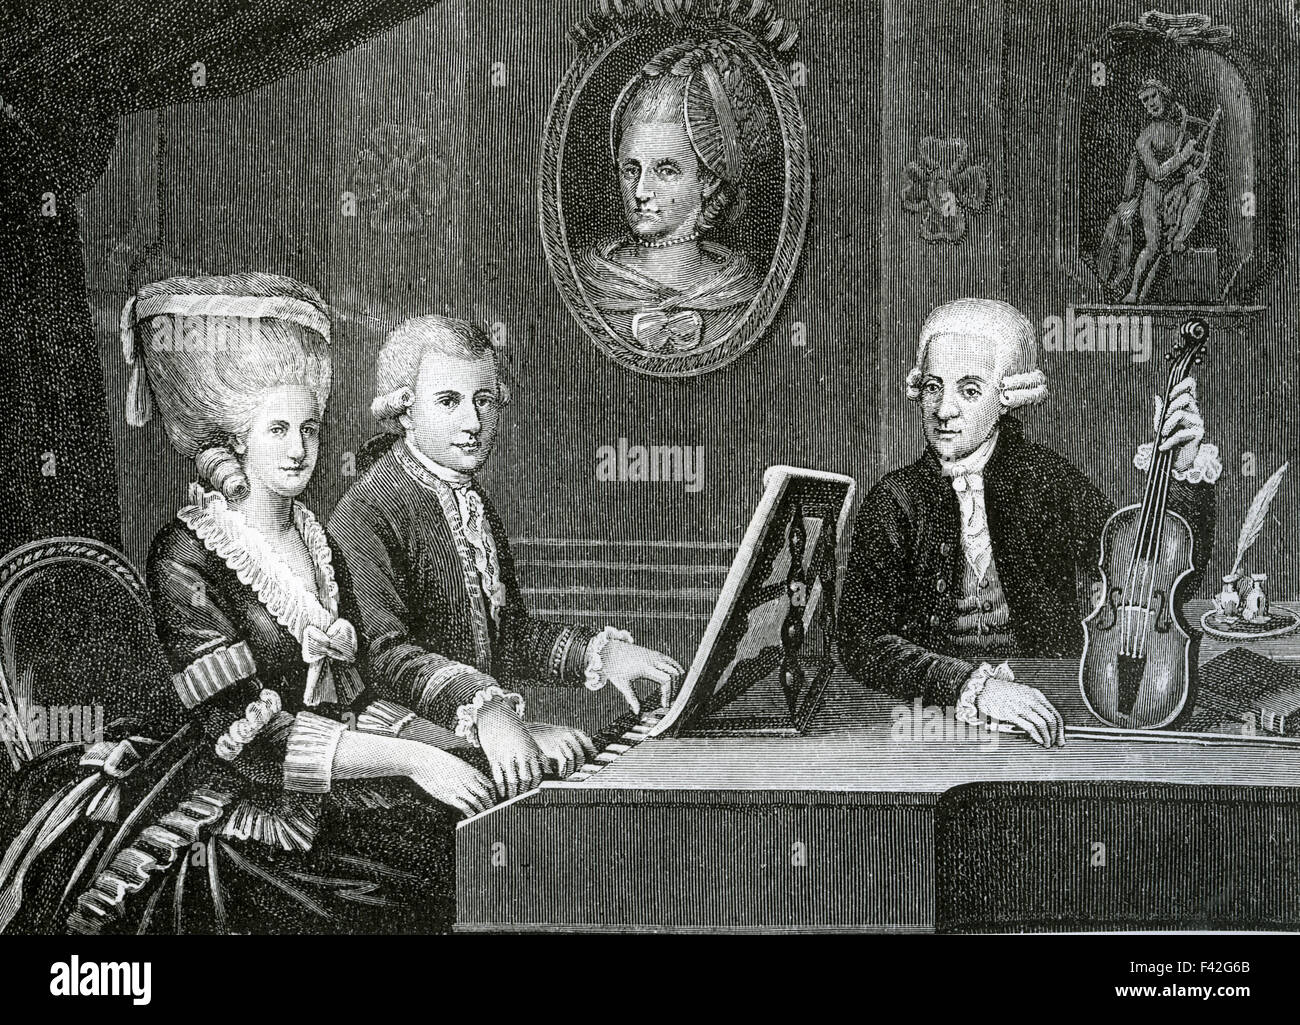 WOLFGANG AMADEUS MOZART family an engraving based on the ...